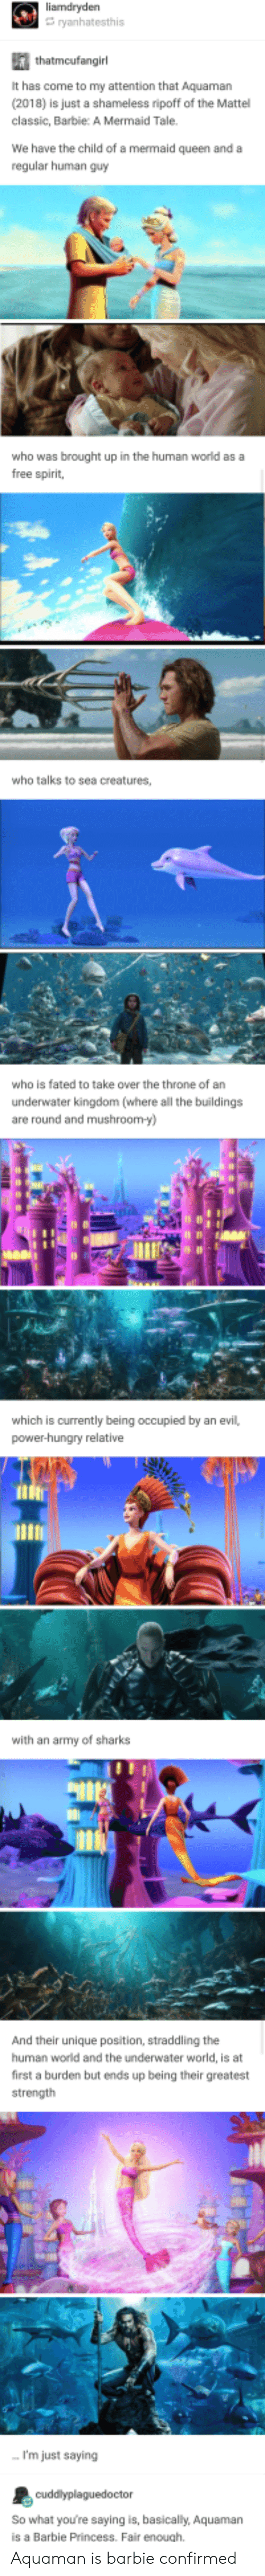 Im Just Saying: liamdrydern  It has come to my attention that Aquaman  (2018) is just a shameless ripoff of the Mattel  classic, Barbie: A Mermaid Tale  We have the child of a mermaid queen and a  regular human guy  who was brought up in the human world as a  free spirit,  who talks to sea creatures,  who is fated to take over the throne of an  underwater kingdom (where al the buildings  are round and mushroom-y)  which is currently being occupied by an evil,  power-hungry relative  with an army of sharks  And their unique position, straddling the  human world and the underwater world, is at  first a burden but ends up being their greatest  strength  I'm just saying  So what youre saying is, basically, Aquaman  s a Barbie Princess. Fair enough. Aquaman is barbie confirmed